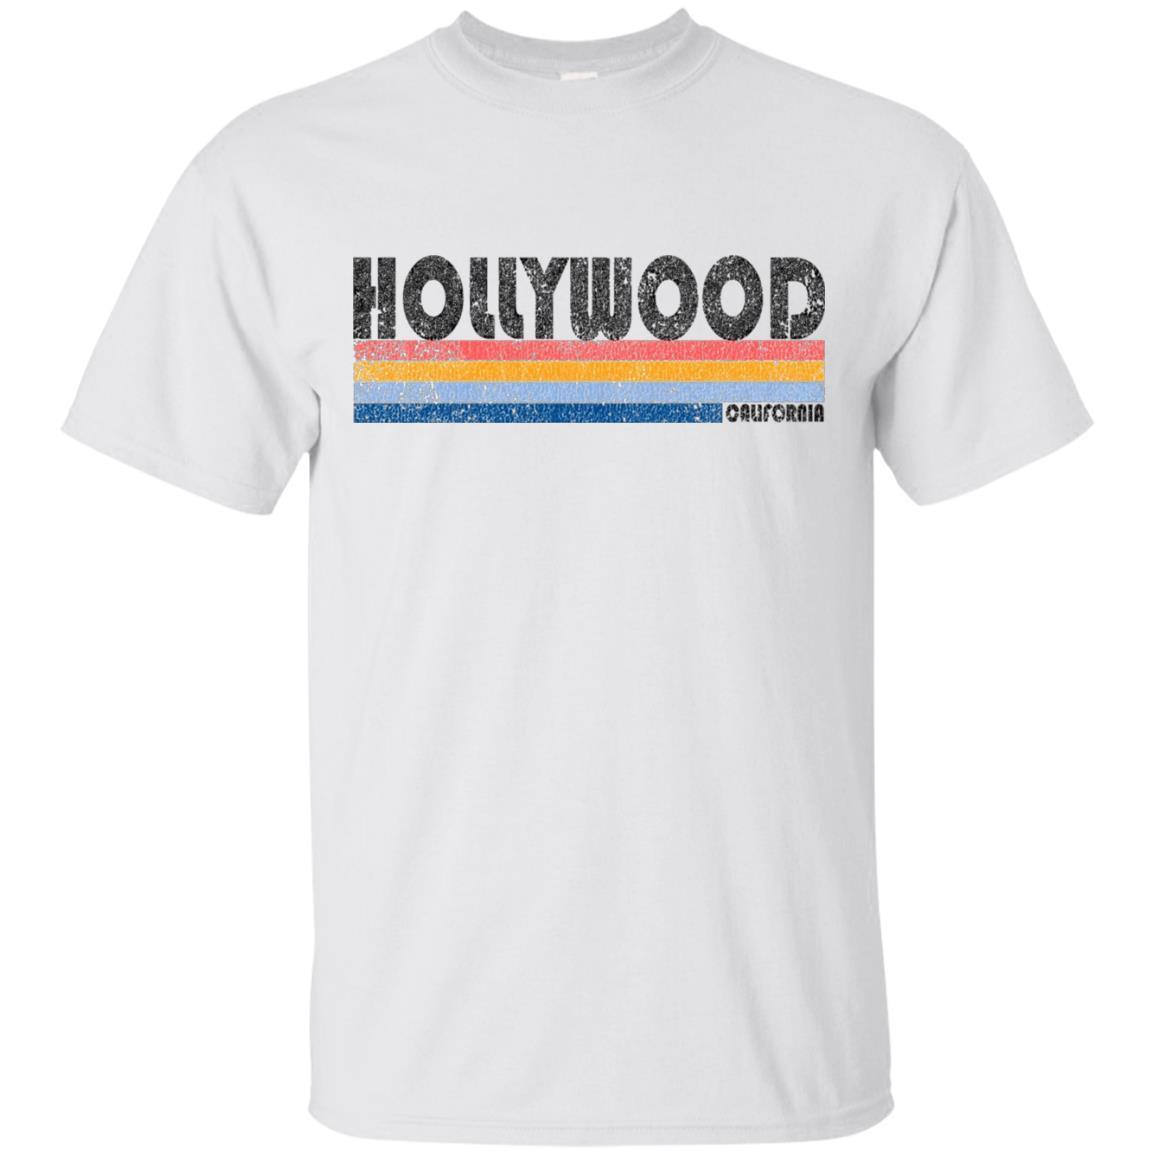 Vintage 1980s Style Hollywood California T Shirt